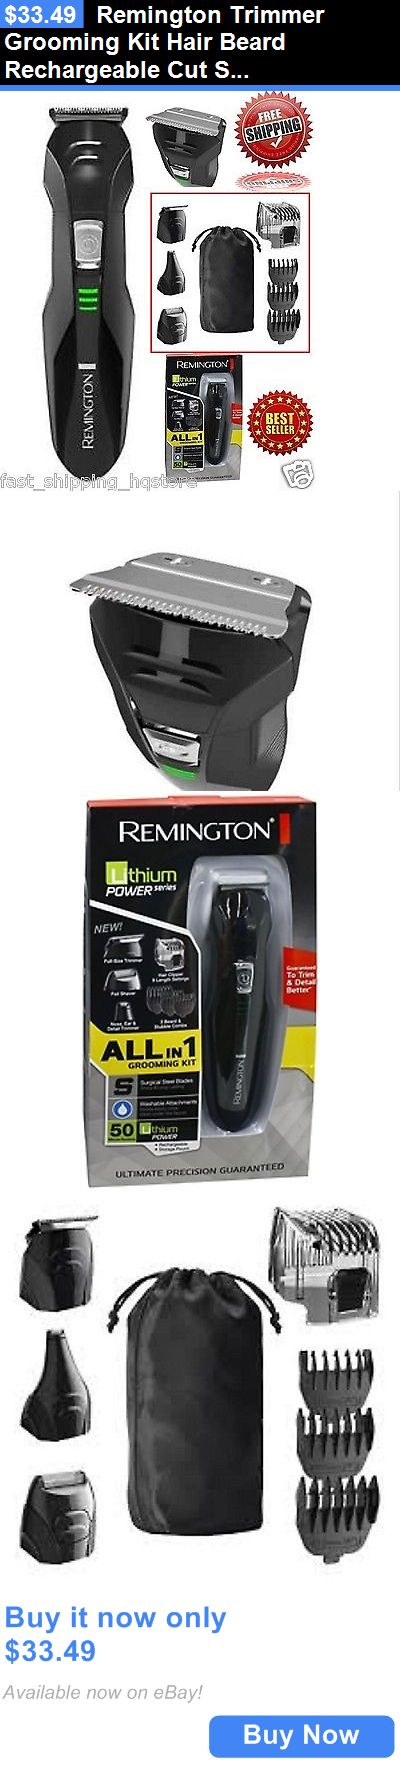 Shaving: Remington Trimmer Grooming Kit Hair Beard Rechargeable Cut Shaver Clipper Razor BUY IT NOW ONLY: $33.49